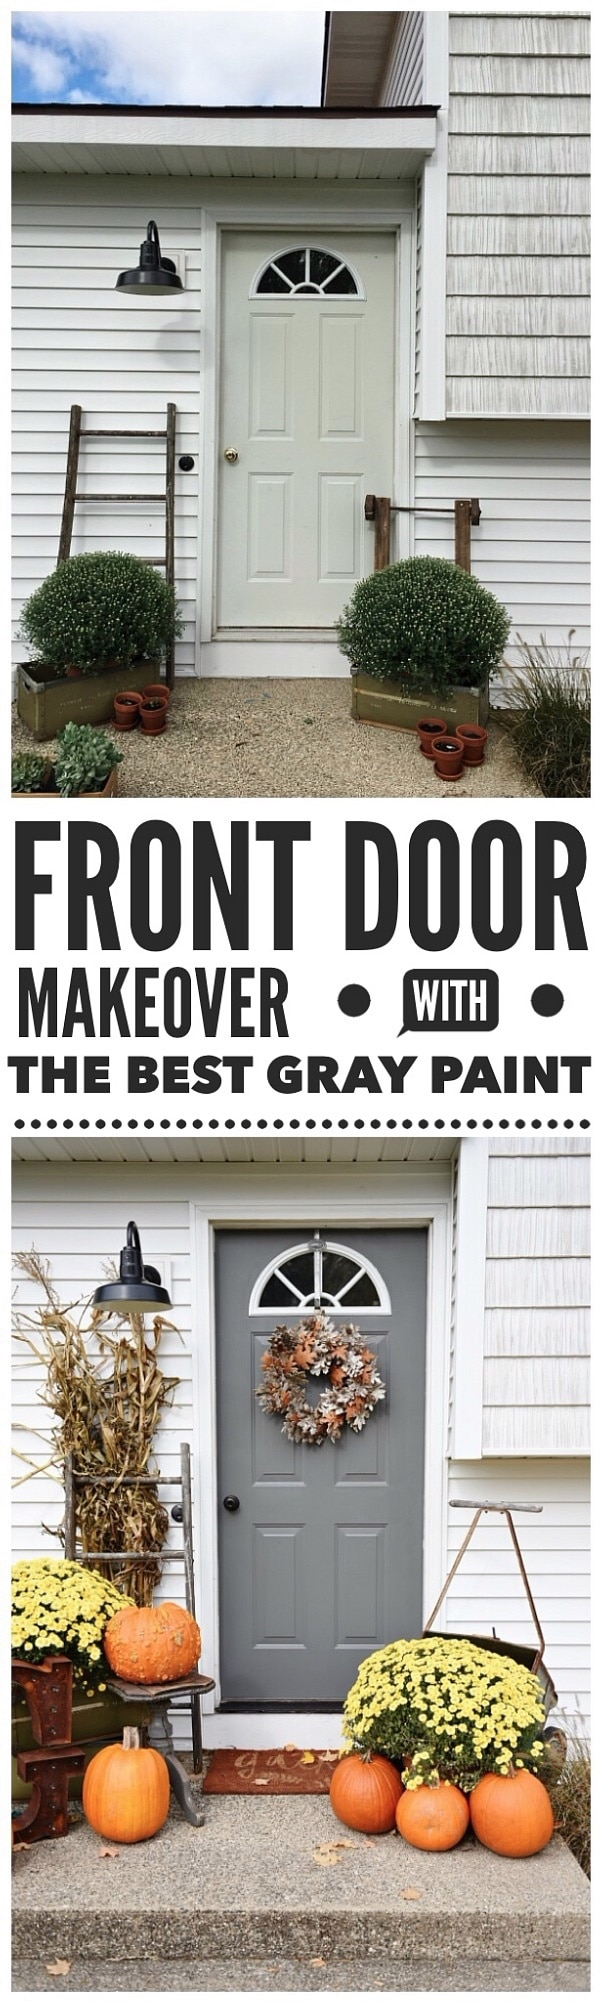 Simple fall porch makeover & a door makeover using the best gray paint! Kendall Charcoal by Benjamin Moore